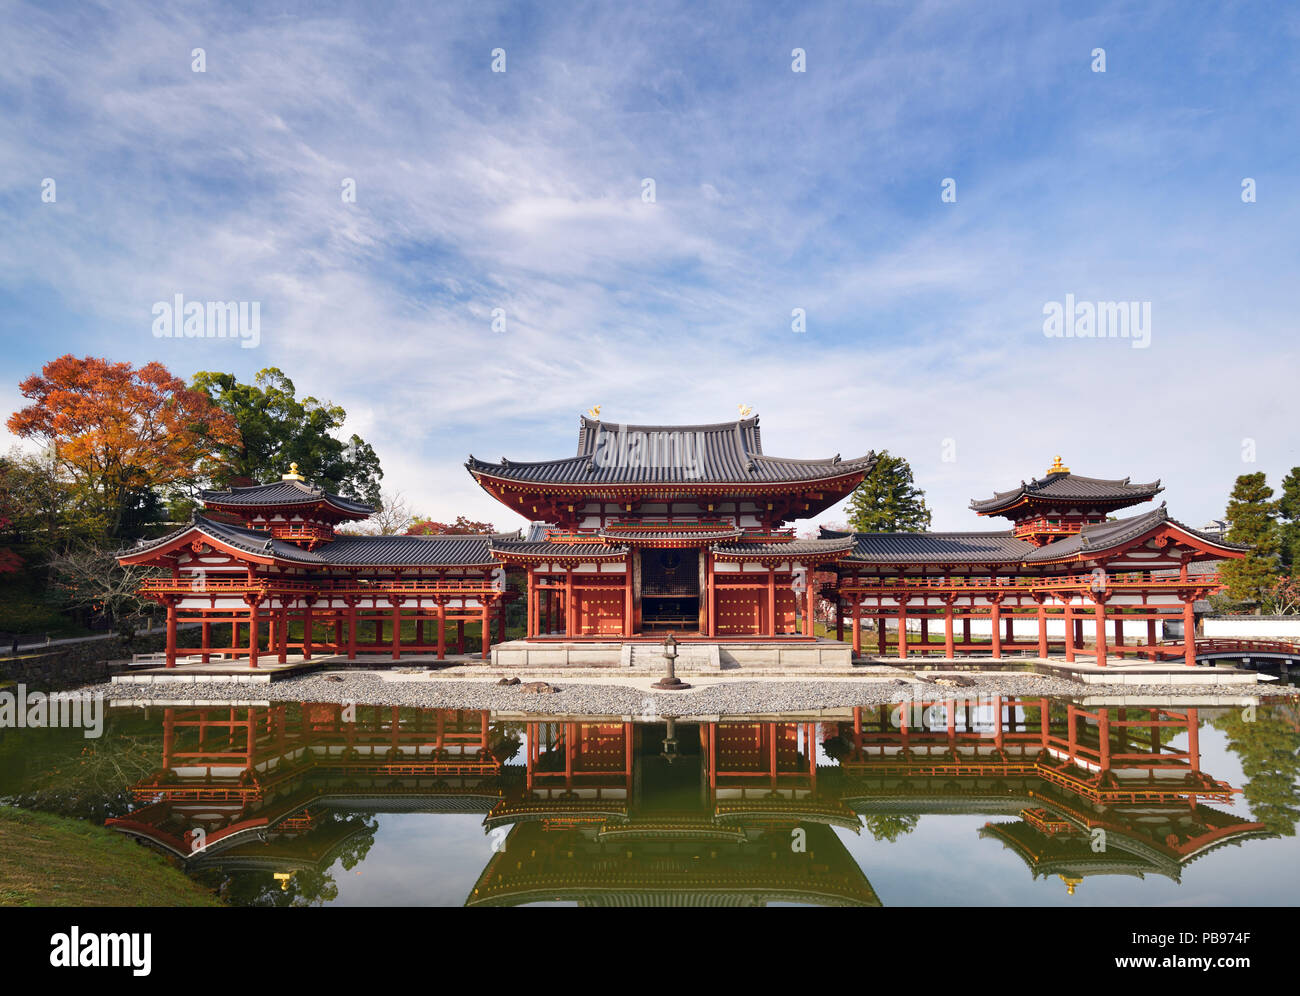 Beautiful Phoenix Hall, Amida hall of Byodoin temple front view, standing under blue sky on Kojima island of Jodoshiki Teien garden pond on a bright s Stock Photo